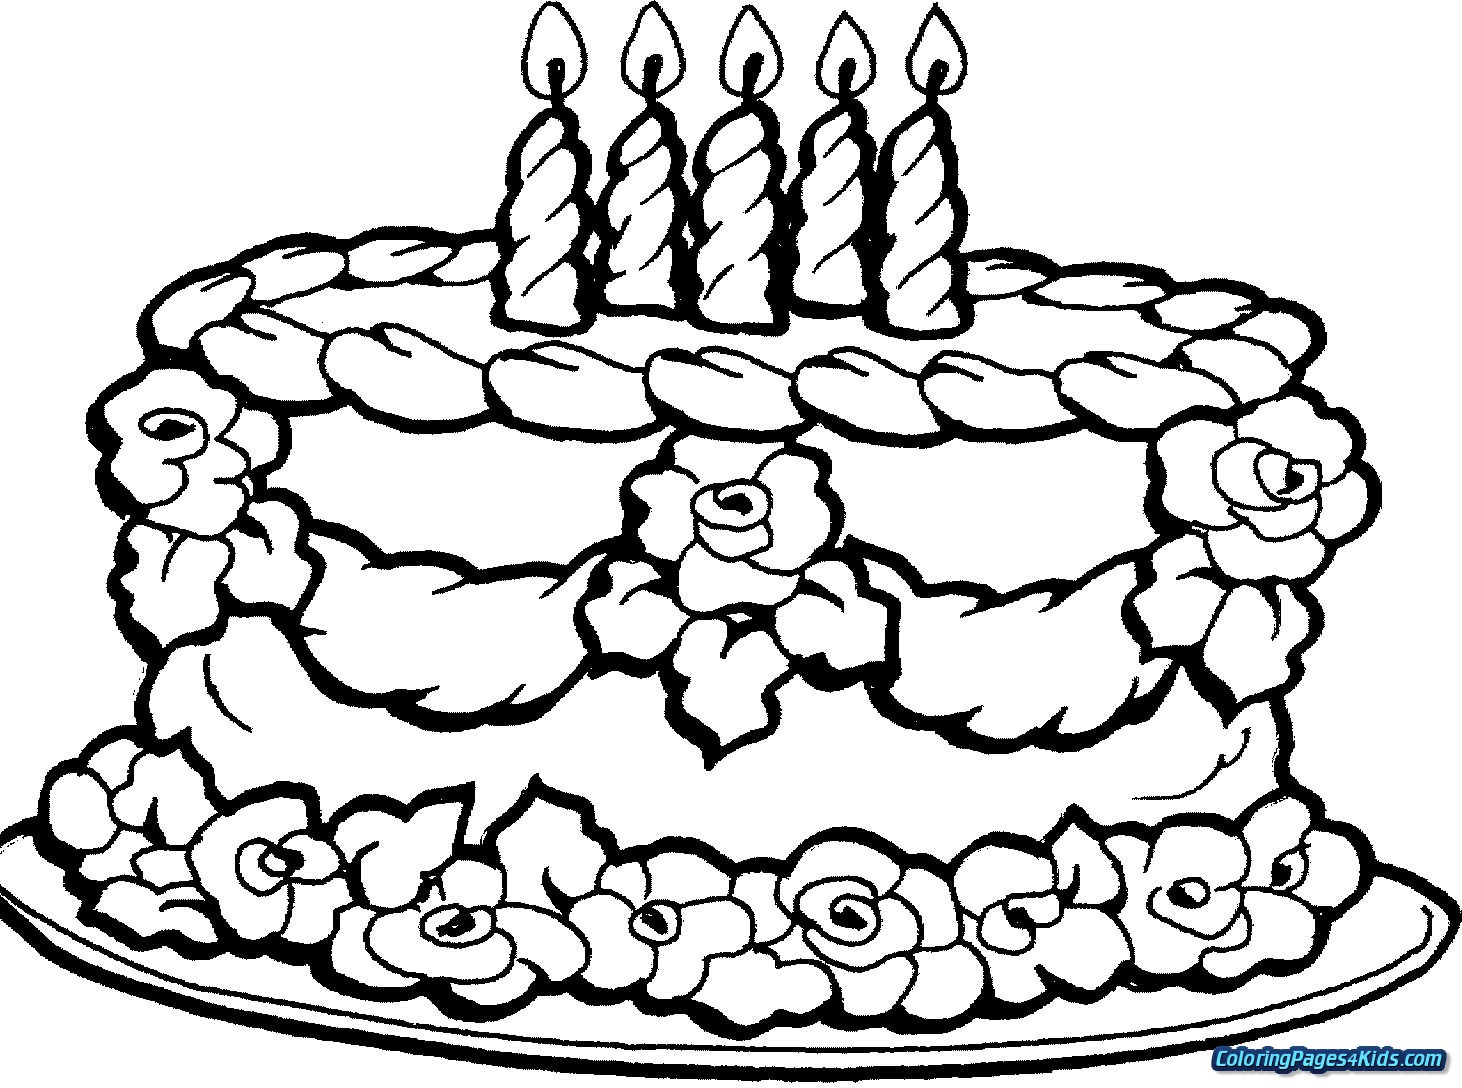 minecraft cake coloring pages minecraft cake drawing free download on clipartmag minecraft pages cake coloring